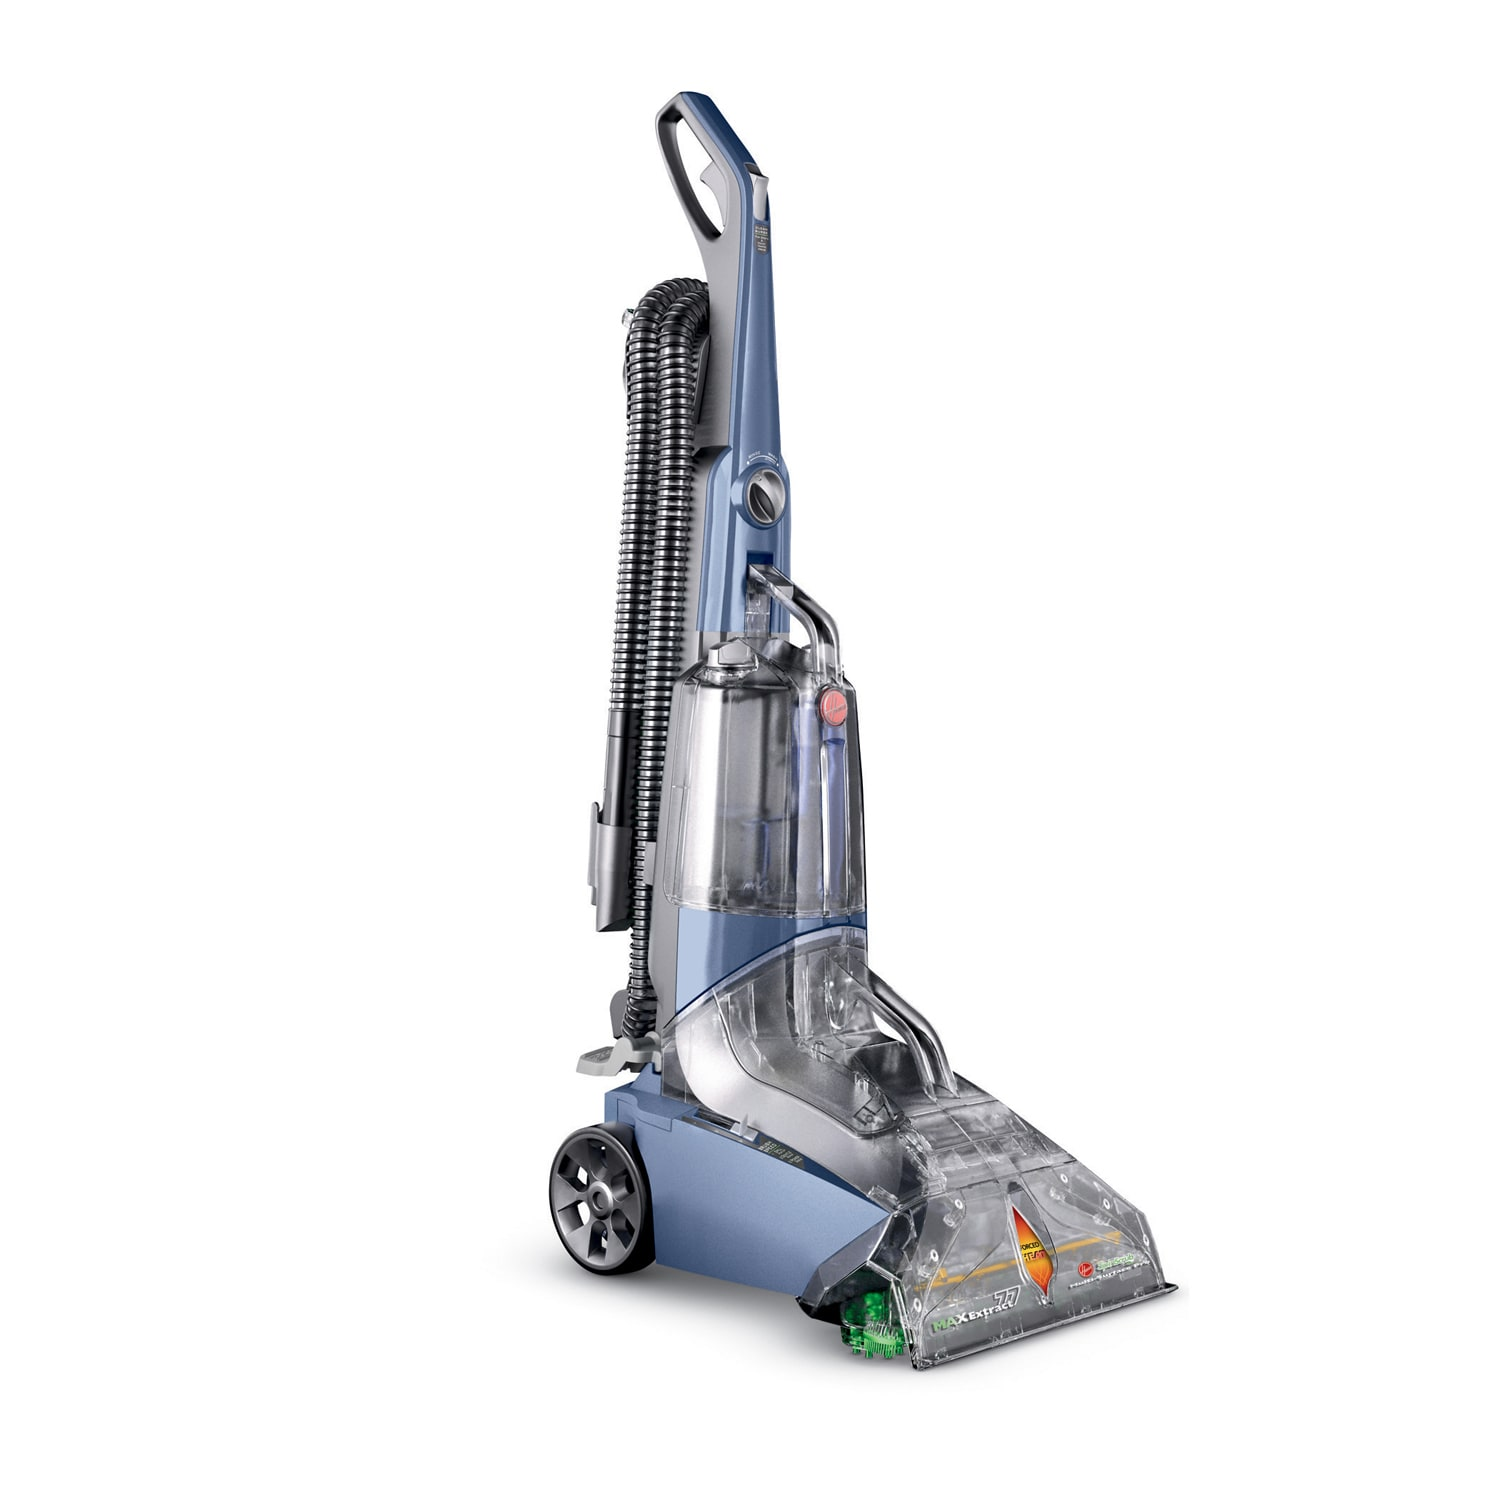 105fdbda78e Shop Hoover FH50240 Max Extract 77 Multi-Surface Pro Carpet and Hard Floor  Deep Cleaner - Blue - Free Shipping Today - Overstock - 5549576